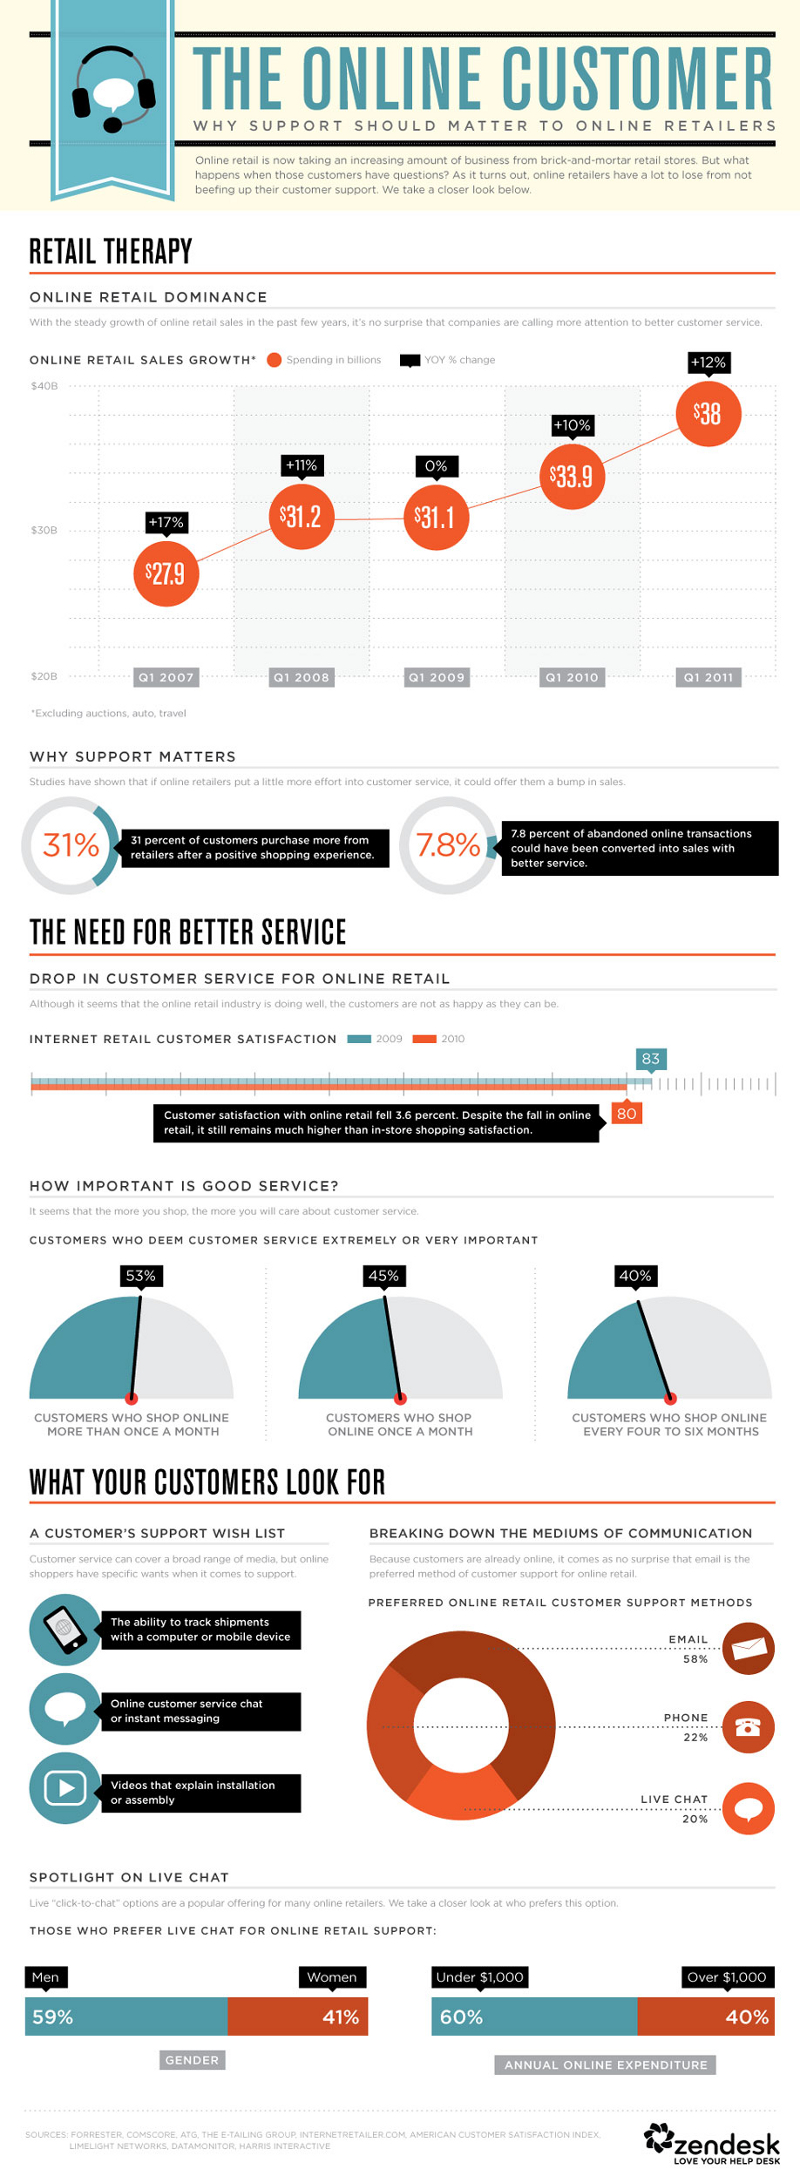 Online Customer Trends